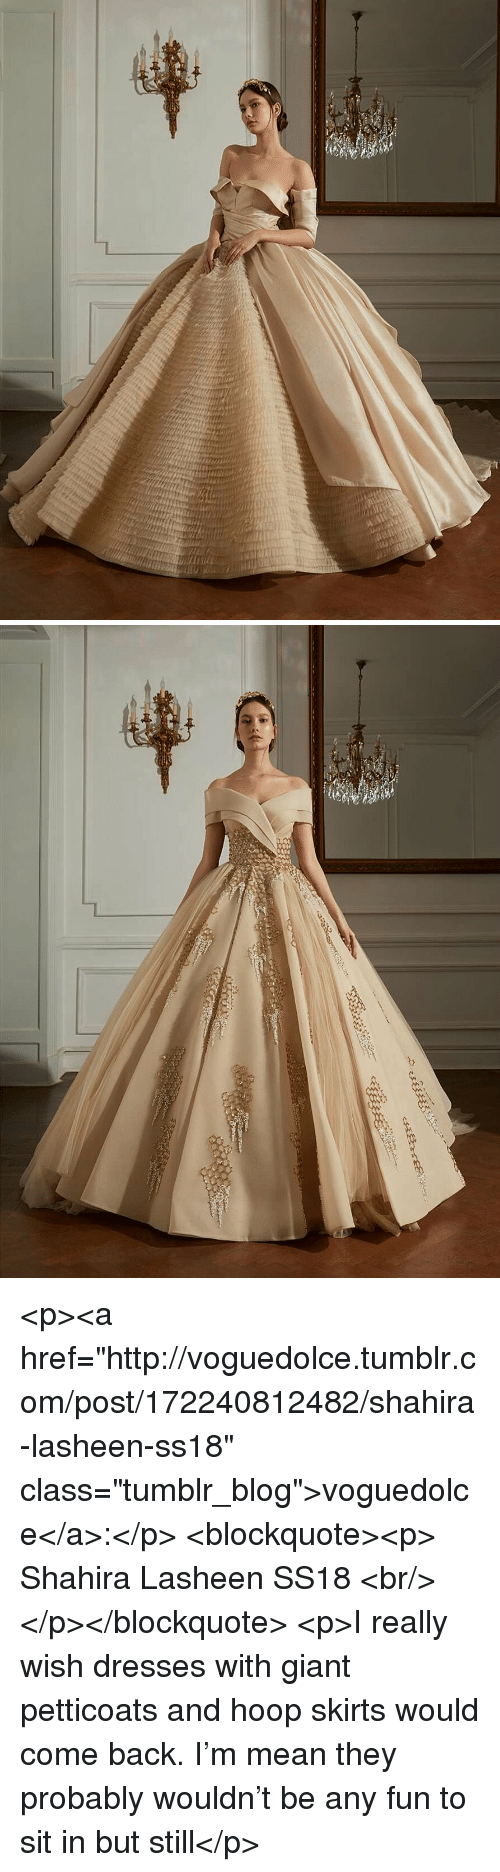 """Tumblr, Blog, and Dresses: <p><a href=""""http://voguedolce.tumblr.com/post/172240812482/shahira-lasheen-ss18"""" class=""""tumblr_blog"""">voguedolce</a>:</p>  <blockquote><p>  Shahira Lasheen SS18  <br/></p></blockquote>  <p>I really wish dresses with giant petticoats and hoop skirts would come back. I'm mean they probably wouldn't be any fun to sit in but still</p>"""